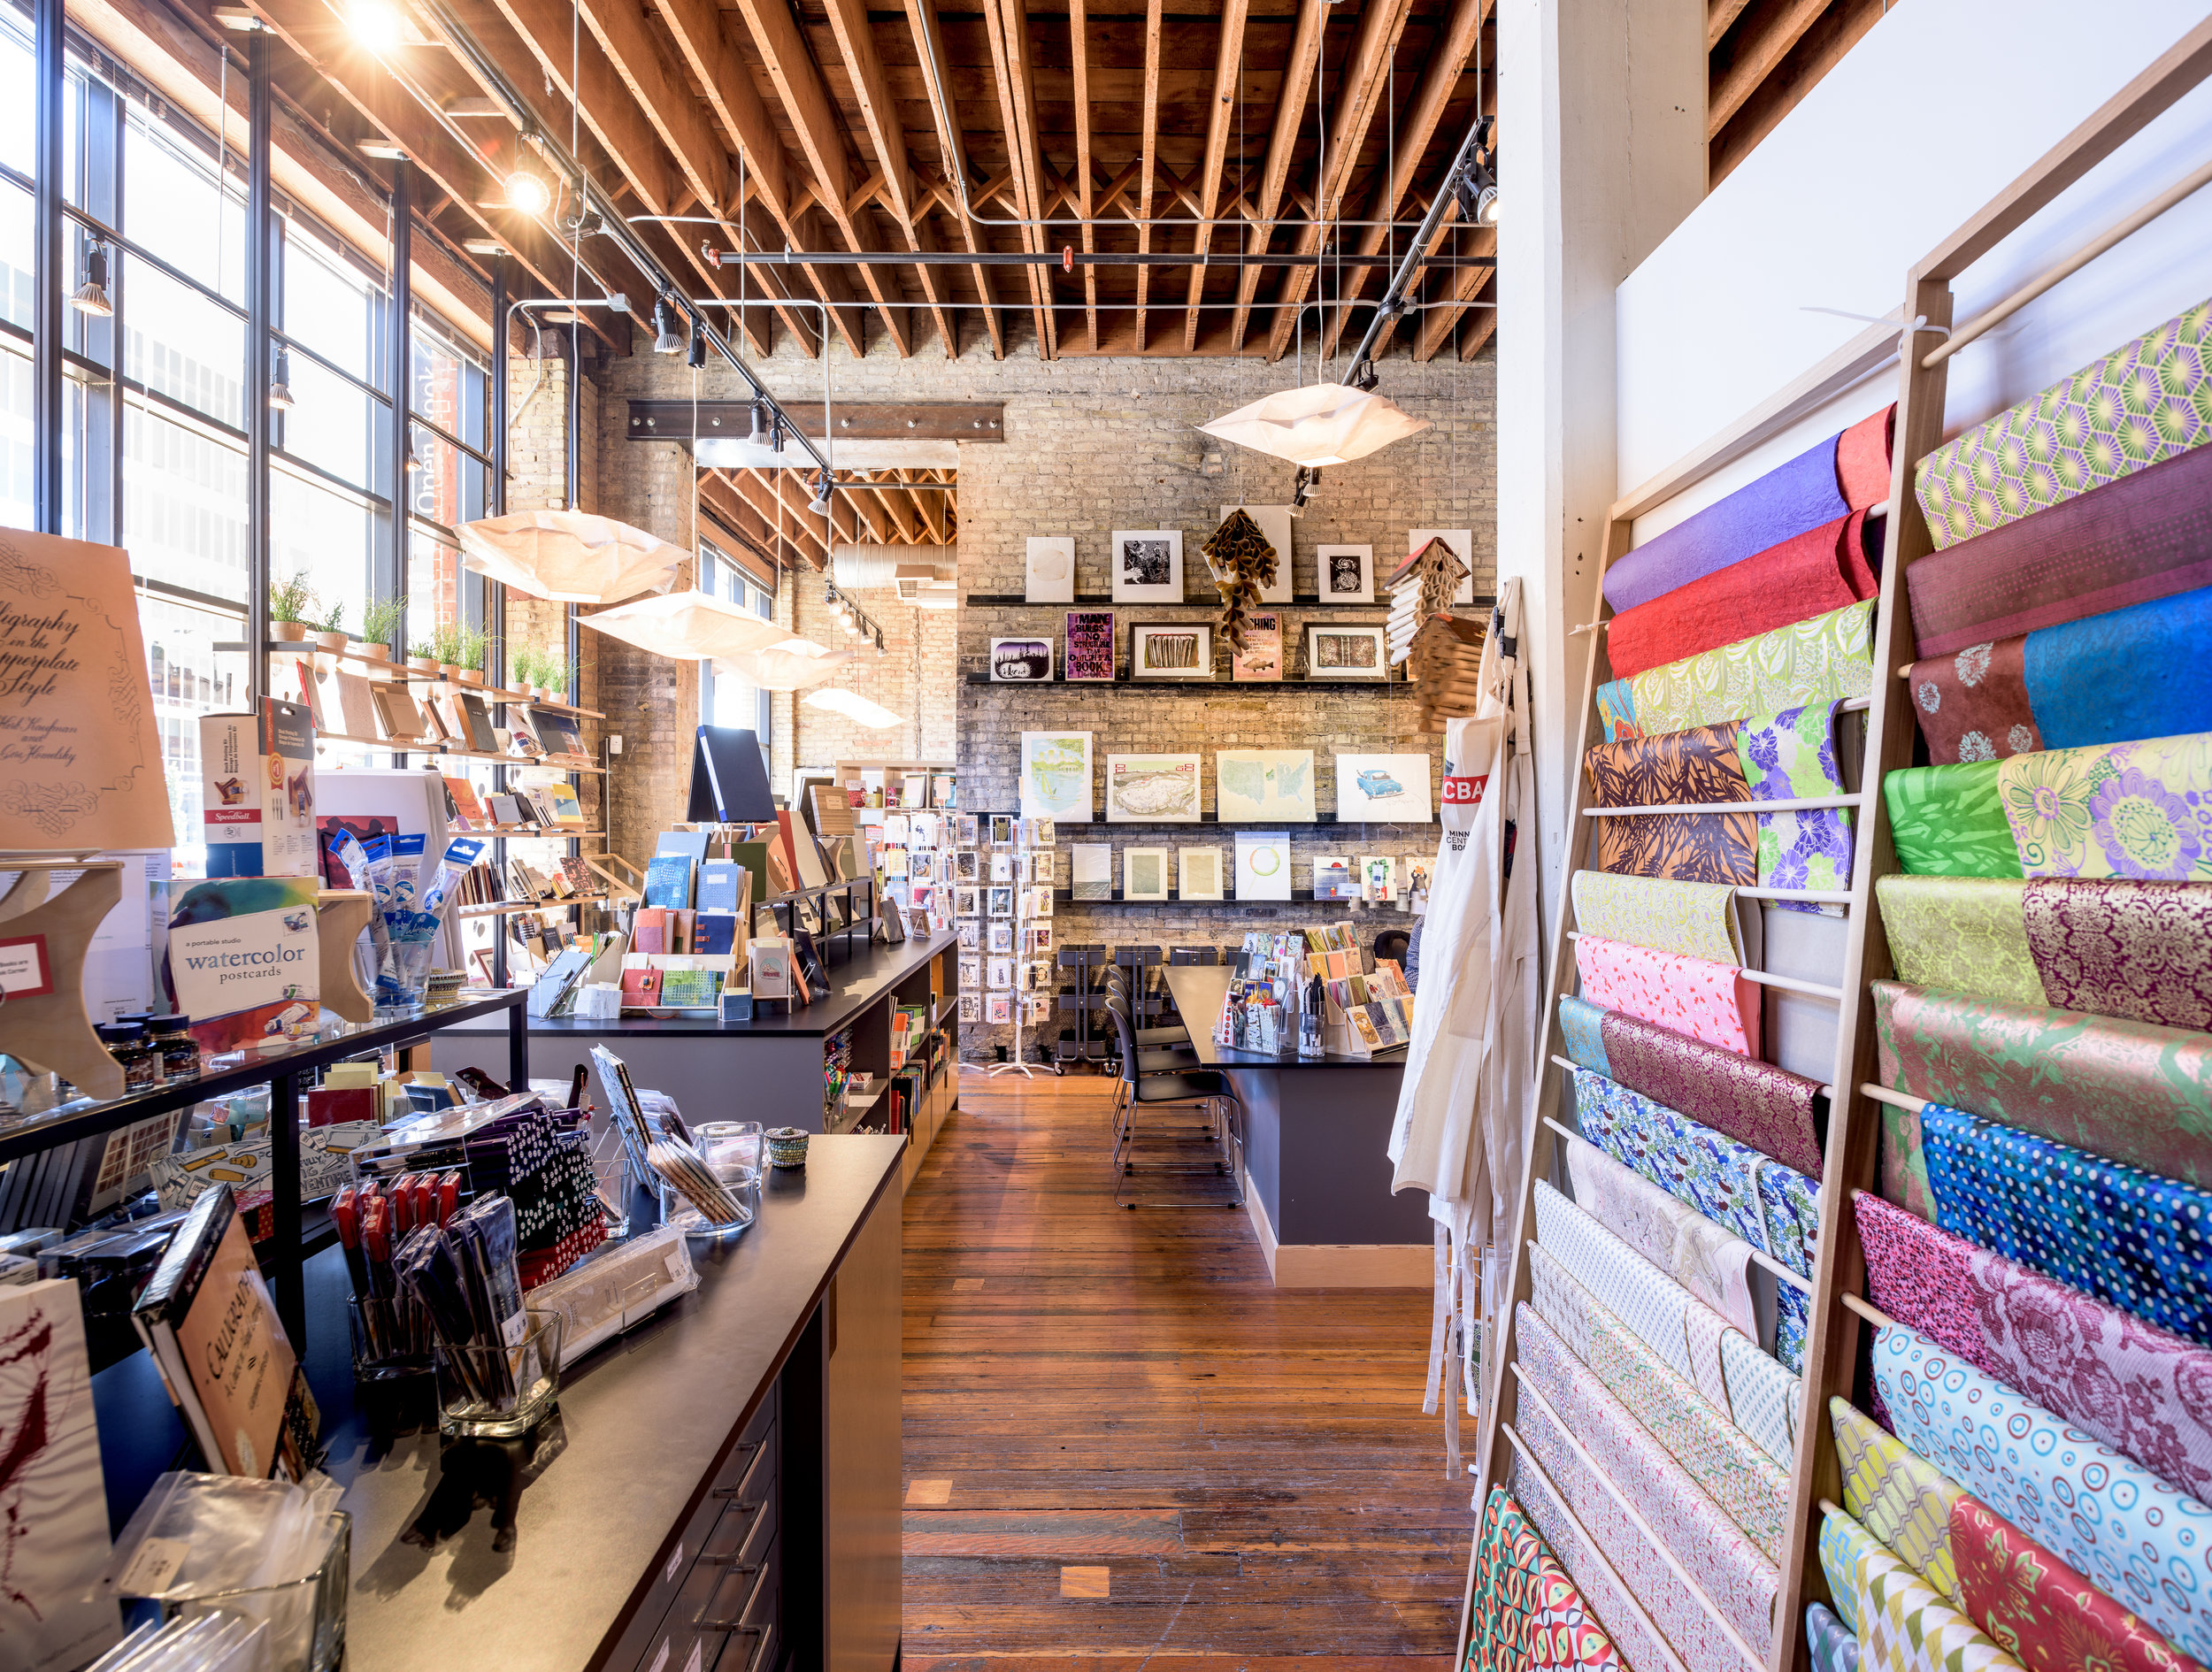 Modern gift shop remodel in historic downtown Minneapolis building by Christian Dean Architecture.